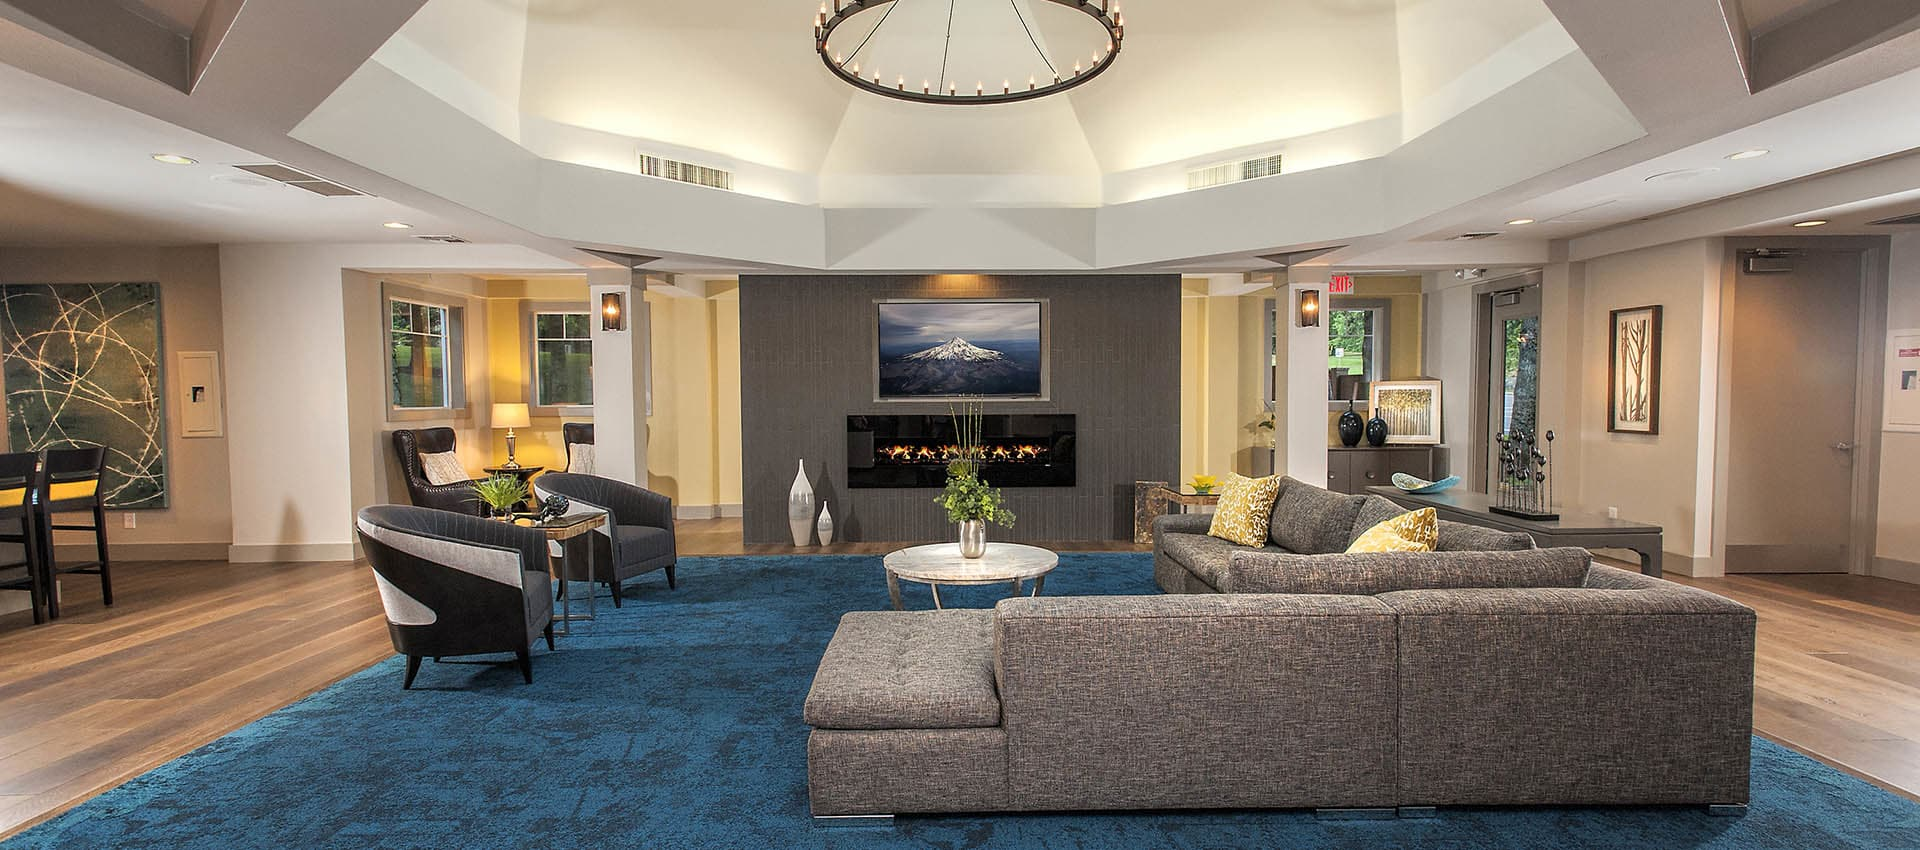 Luxurious Seating Area In Lobby at Waterhouse Place in Beaverton, OR